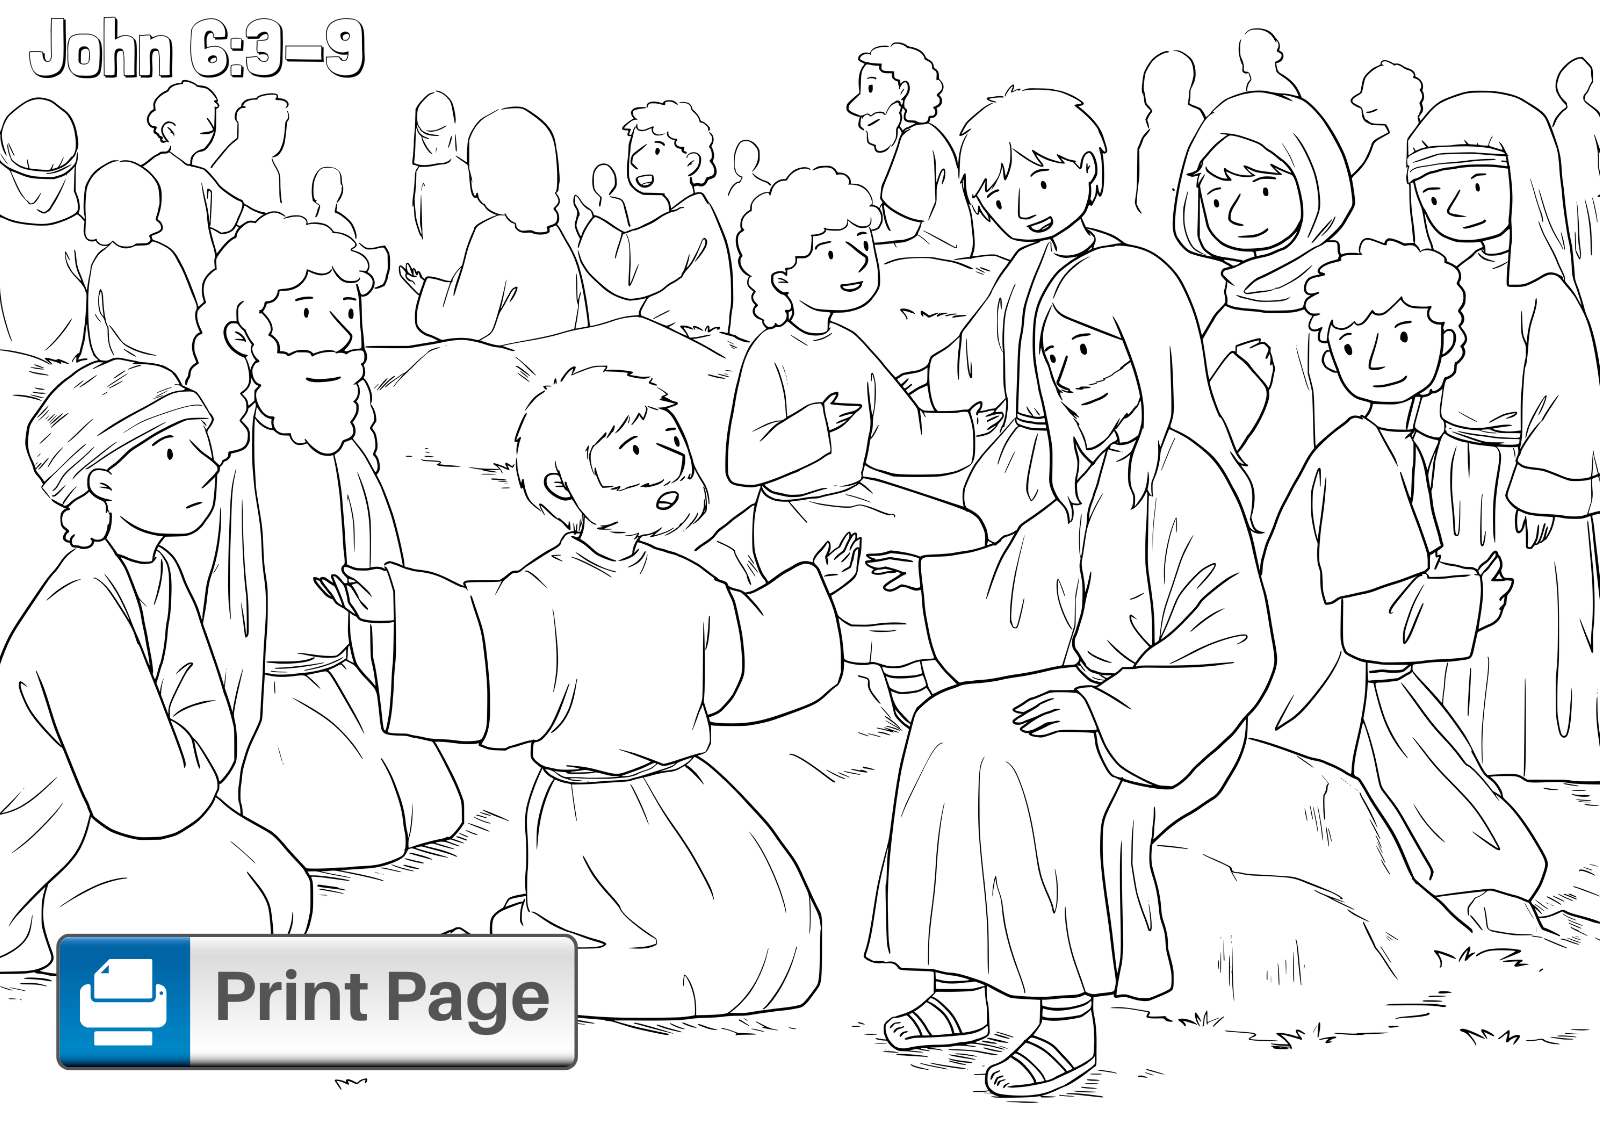 jesus feeds 5000 coloring page jesus feeds the 5000 bible story coloring pages feeds page 5000 jesus coloring